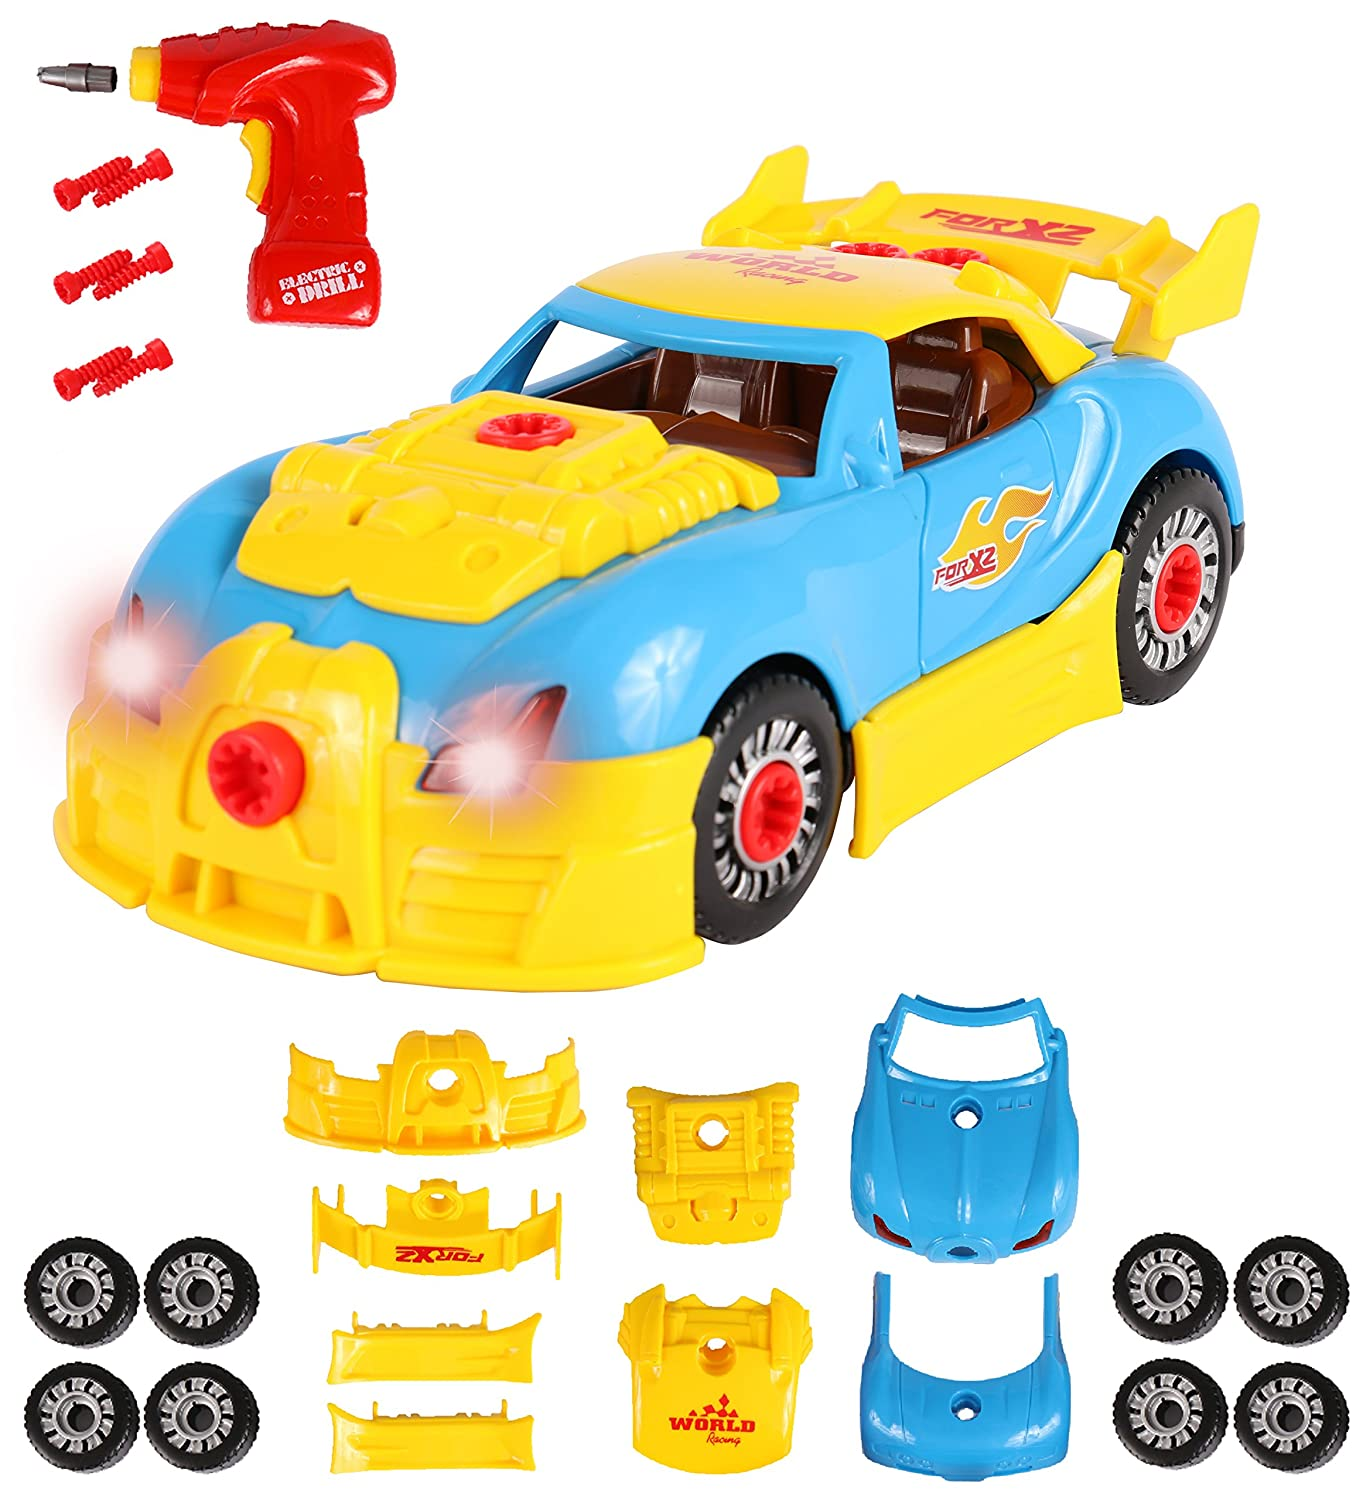 ToyThrill Build Your Own Take Apart Car with Toy Power Drill, Lights and Sounds - More Than 30 Pieces – Fix, Remodel, Drive and Play Racing Car or Convertible